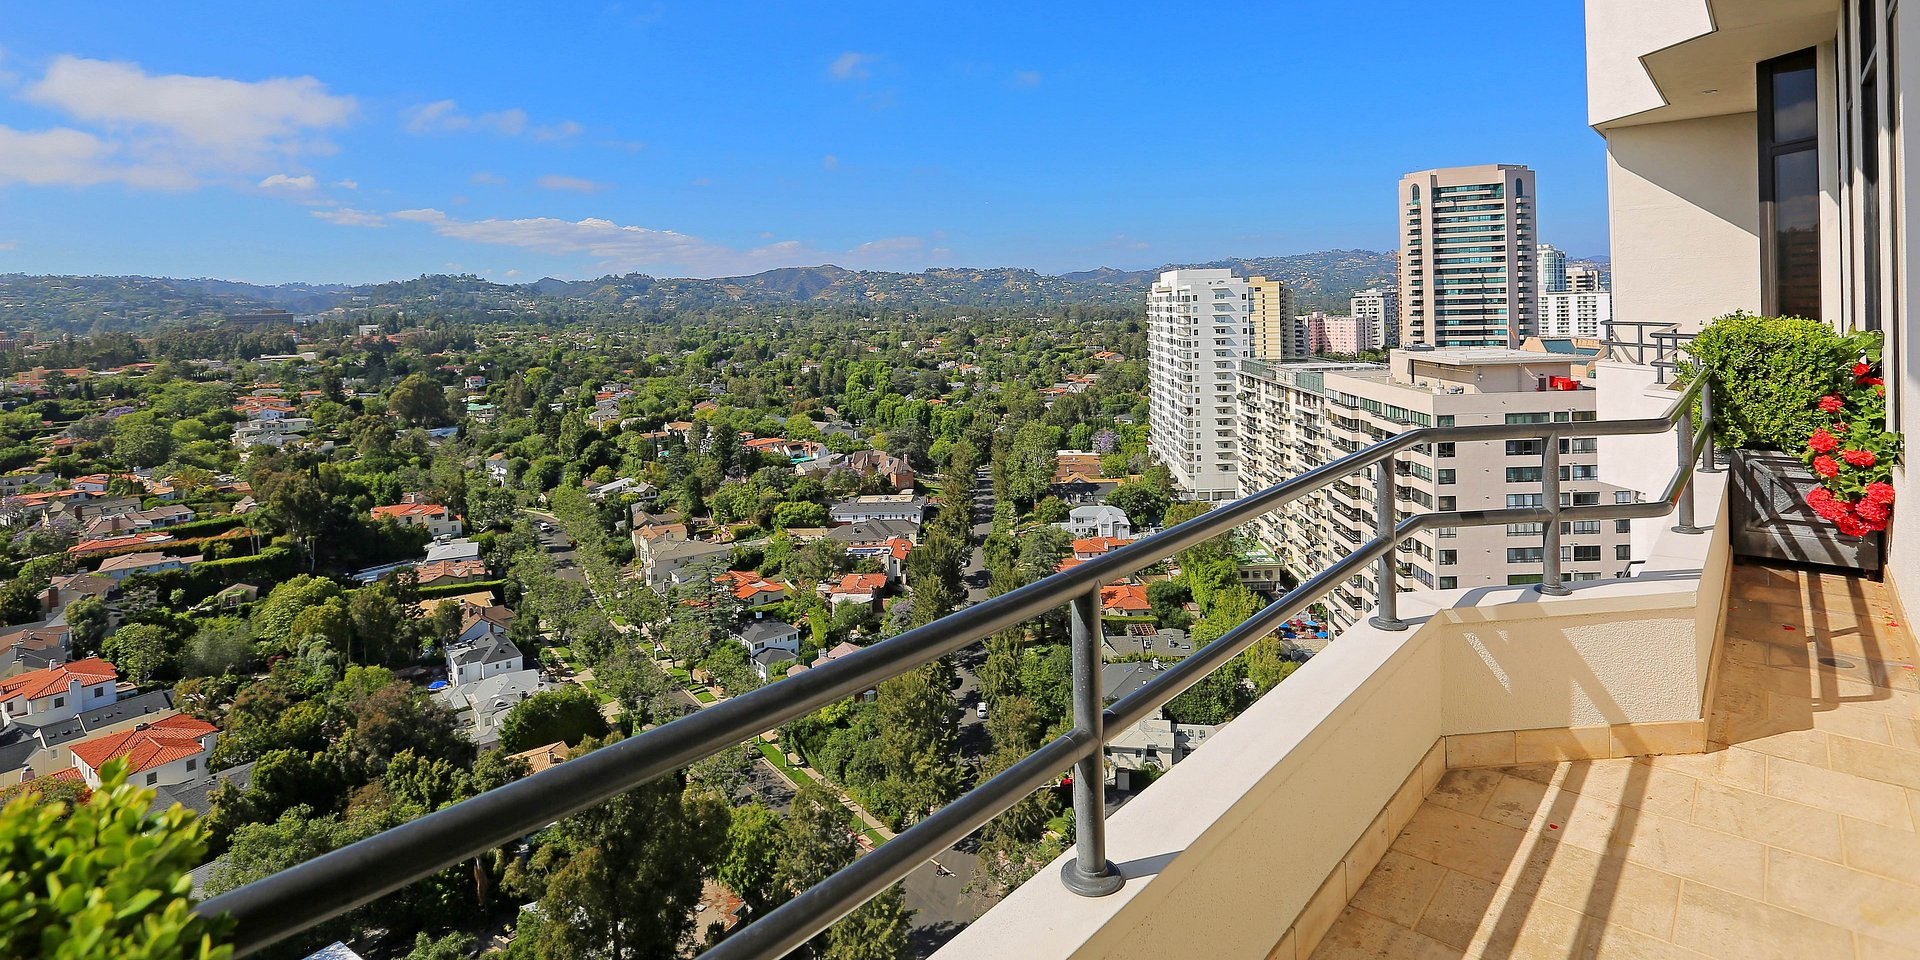 Coldwell Banker Residential Brokerage Lists Wilshire House Penthouse Property in Los Angeles for $9.98 Million